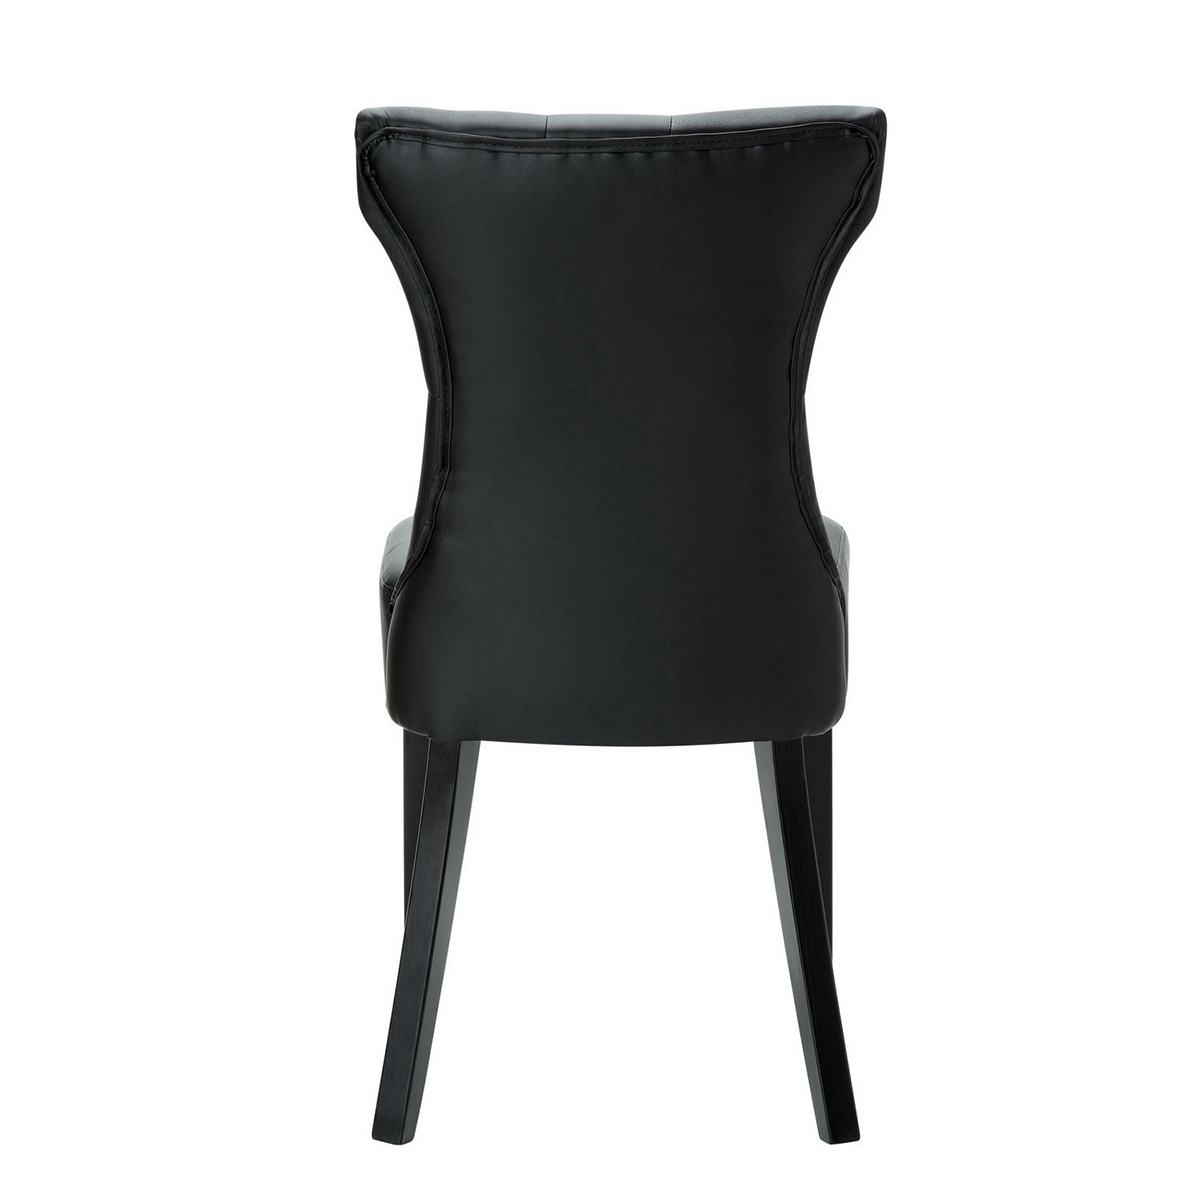 Modway Silhouette Dining Side Chair - Black